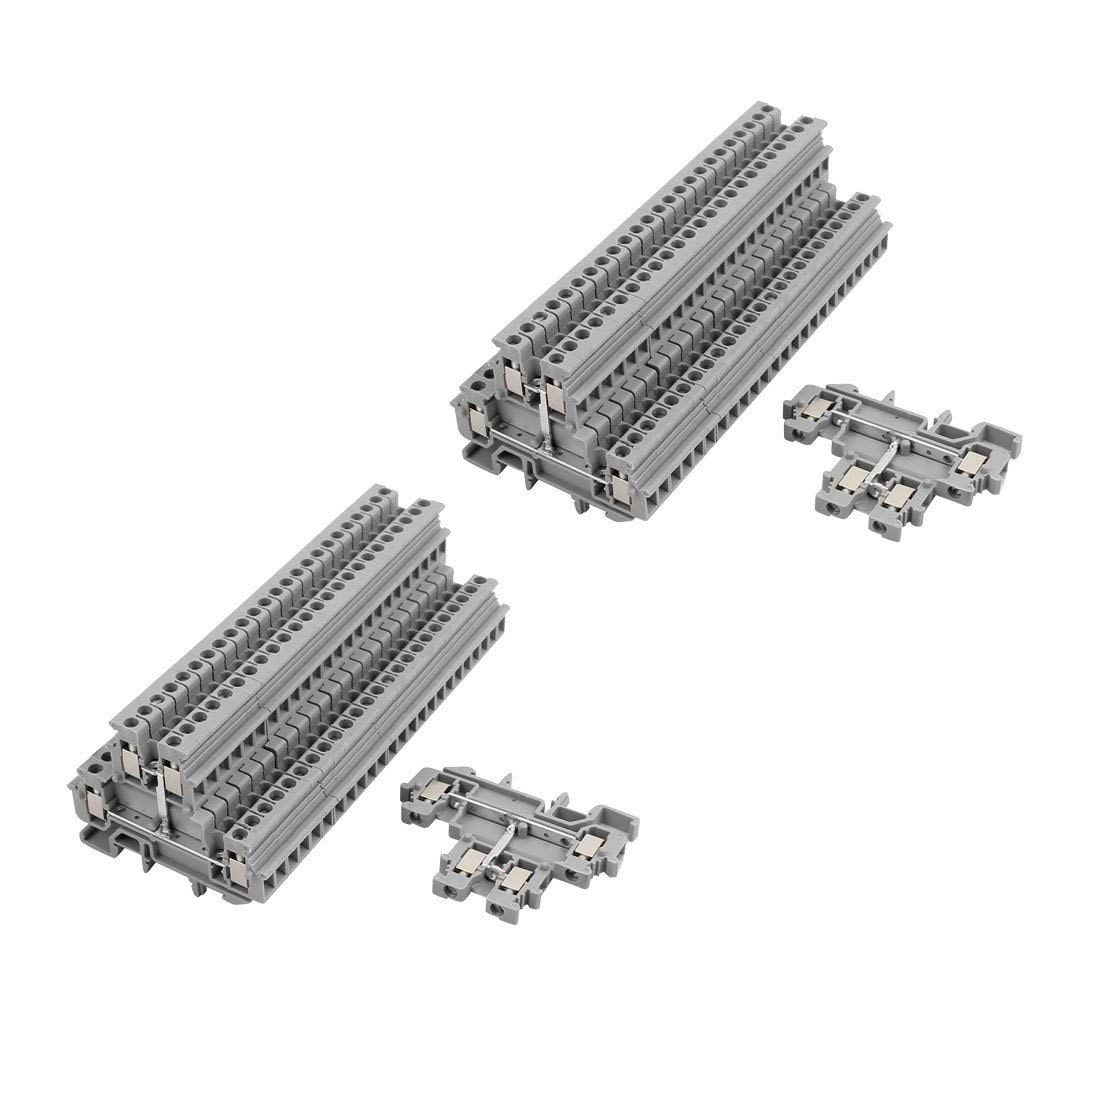 uxcell 50Pcs MBKKB2.5 DIN Rail Mount Double-Level Terminal Block 500V 32A Gray